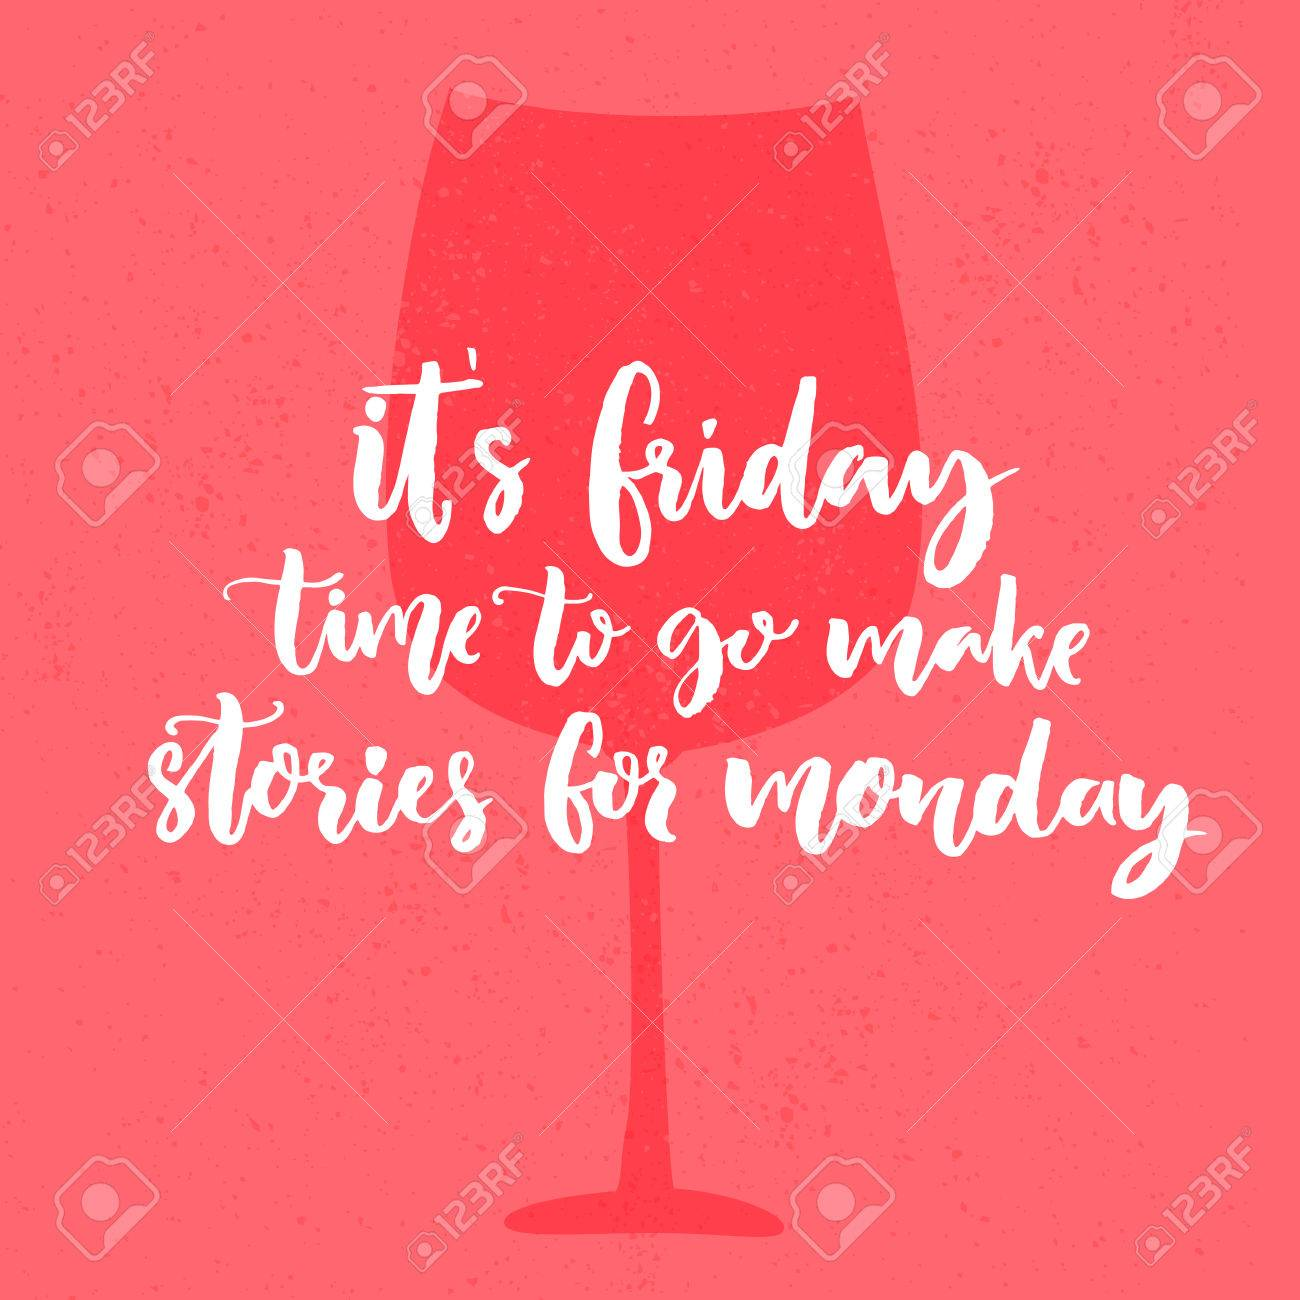 It's Friday, time to go make stories for Monday. Funny saying about week end. Vector poster design with glass of wine - 60316459